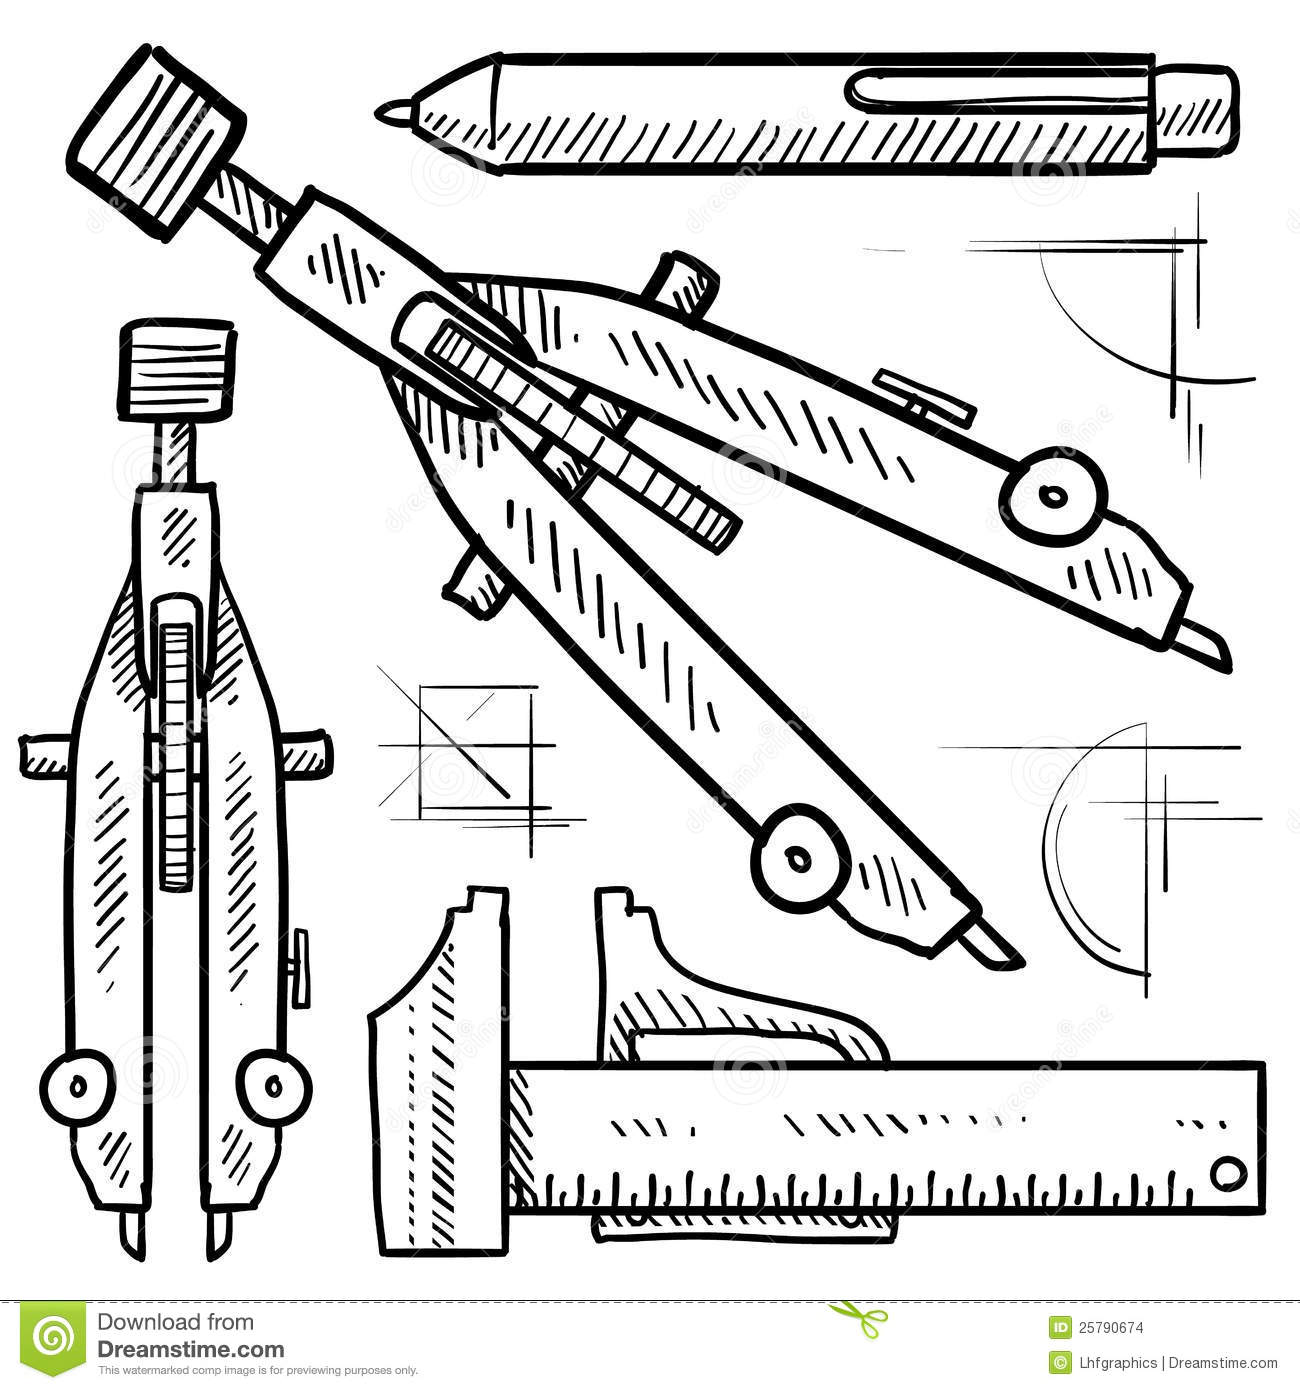 free tool to draw architecture diagram house electrical wiring pdf drafting and architectural tools sketch stock images